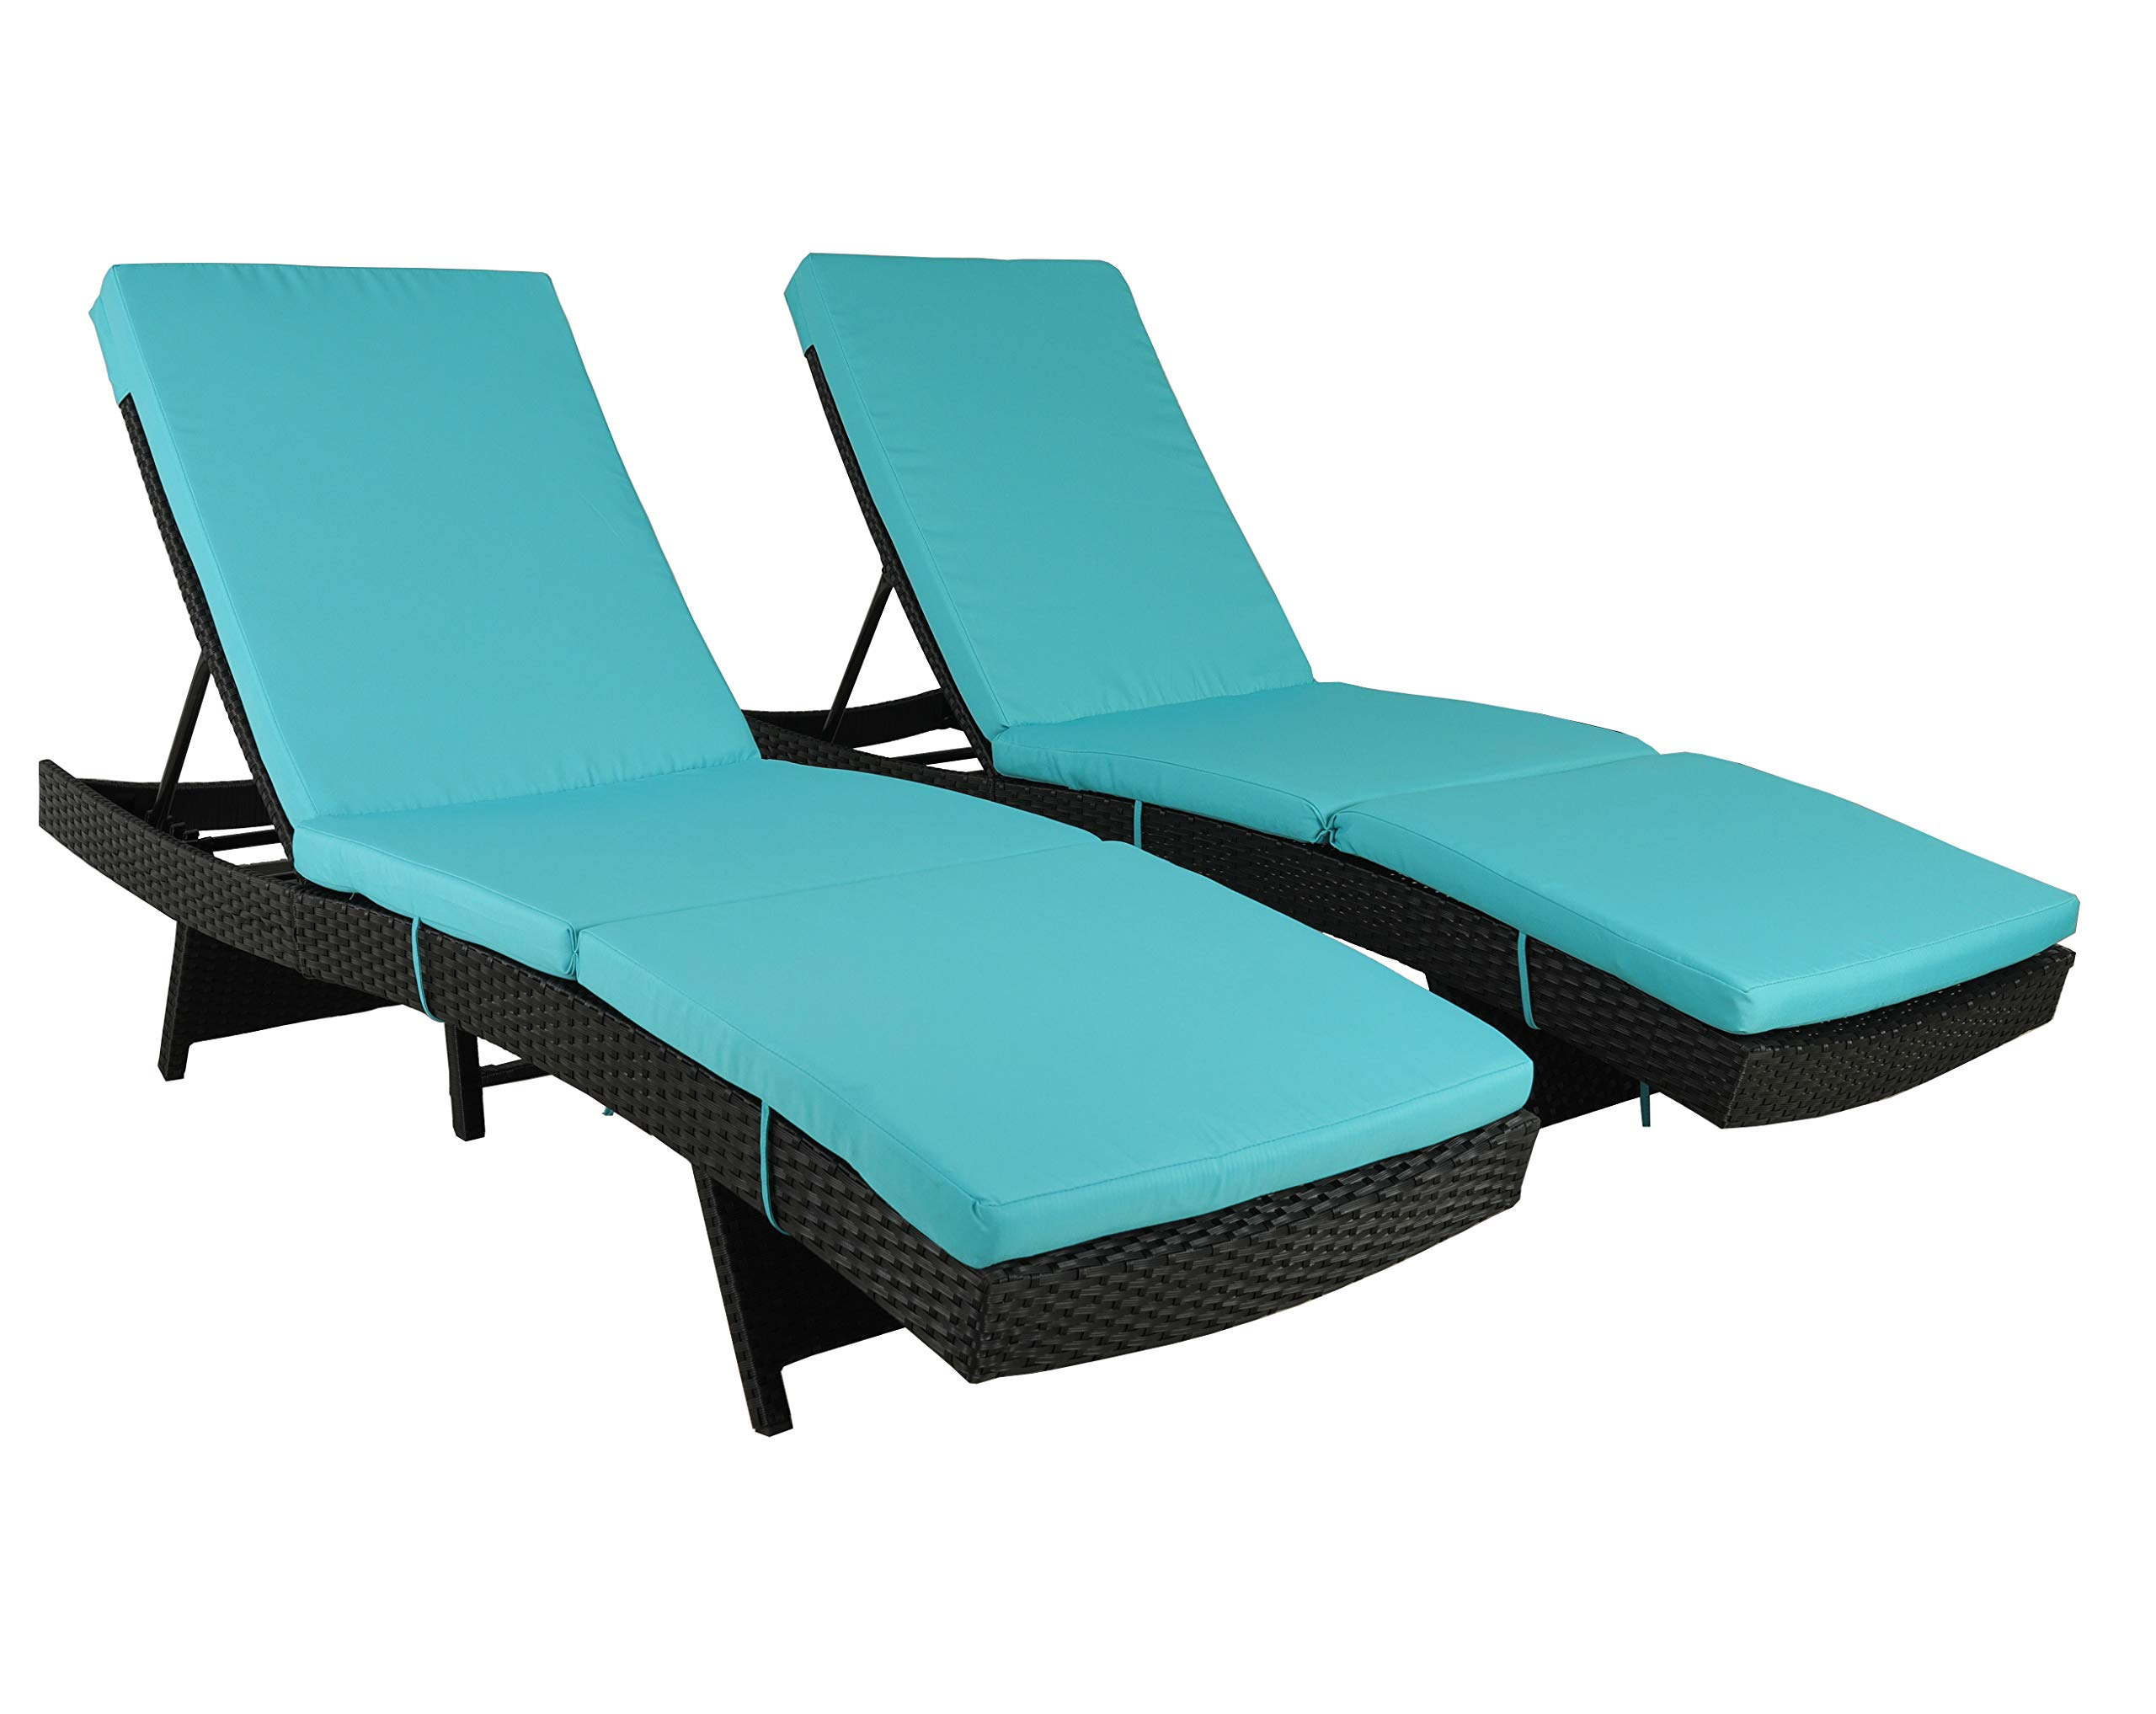 Patio Furniture Chair Set Outdoor Patio Lounger Black Rattan Wicker Pool Deck Chairs Adjustable Cushioned Outdoor Chaise Lounge Chair(Turquoise Cushions,Set of 2)